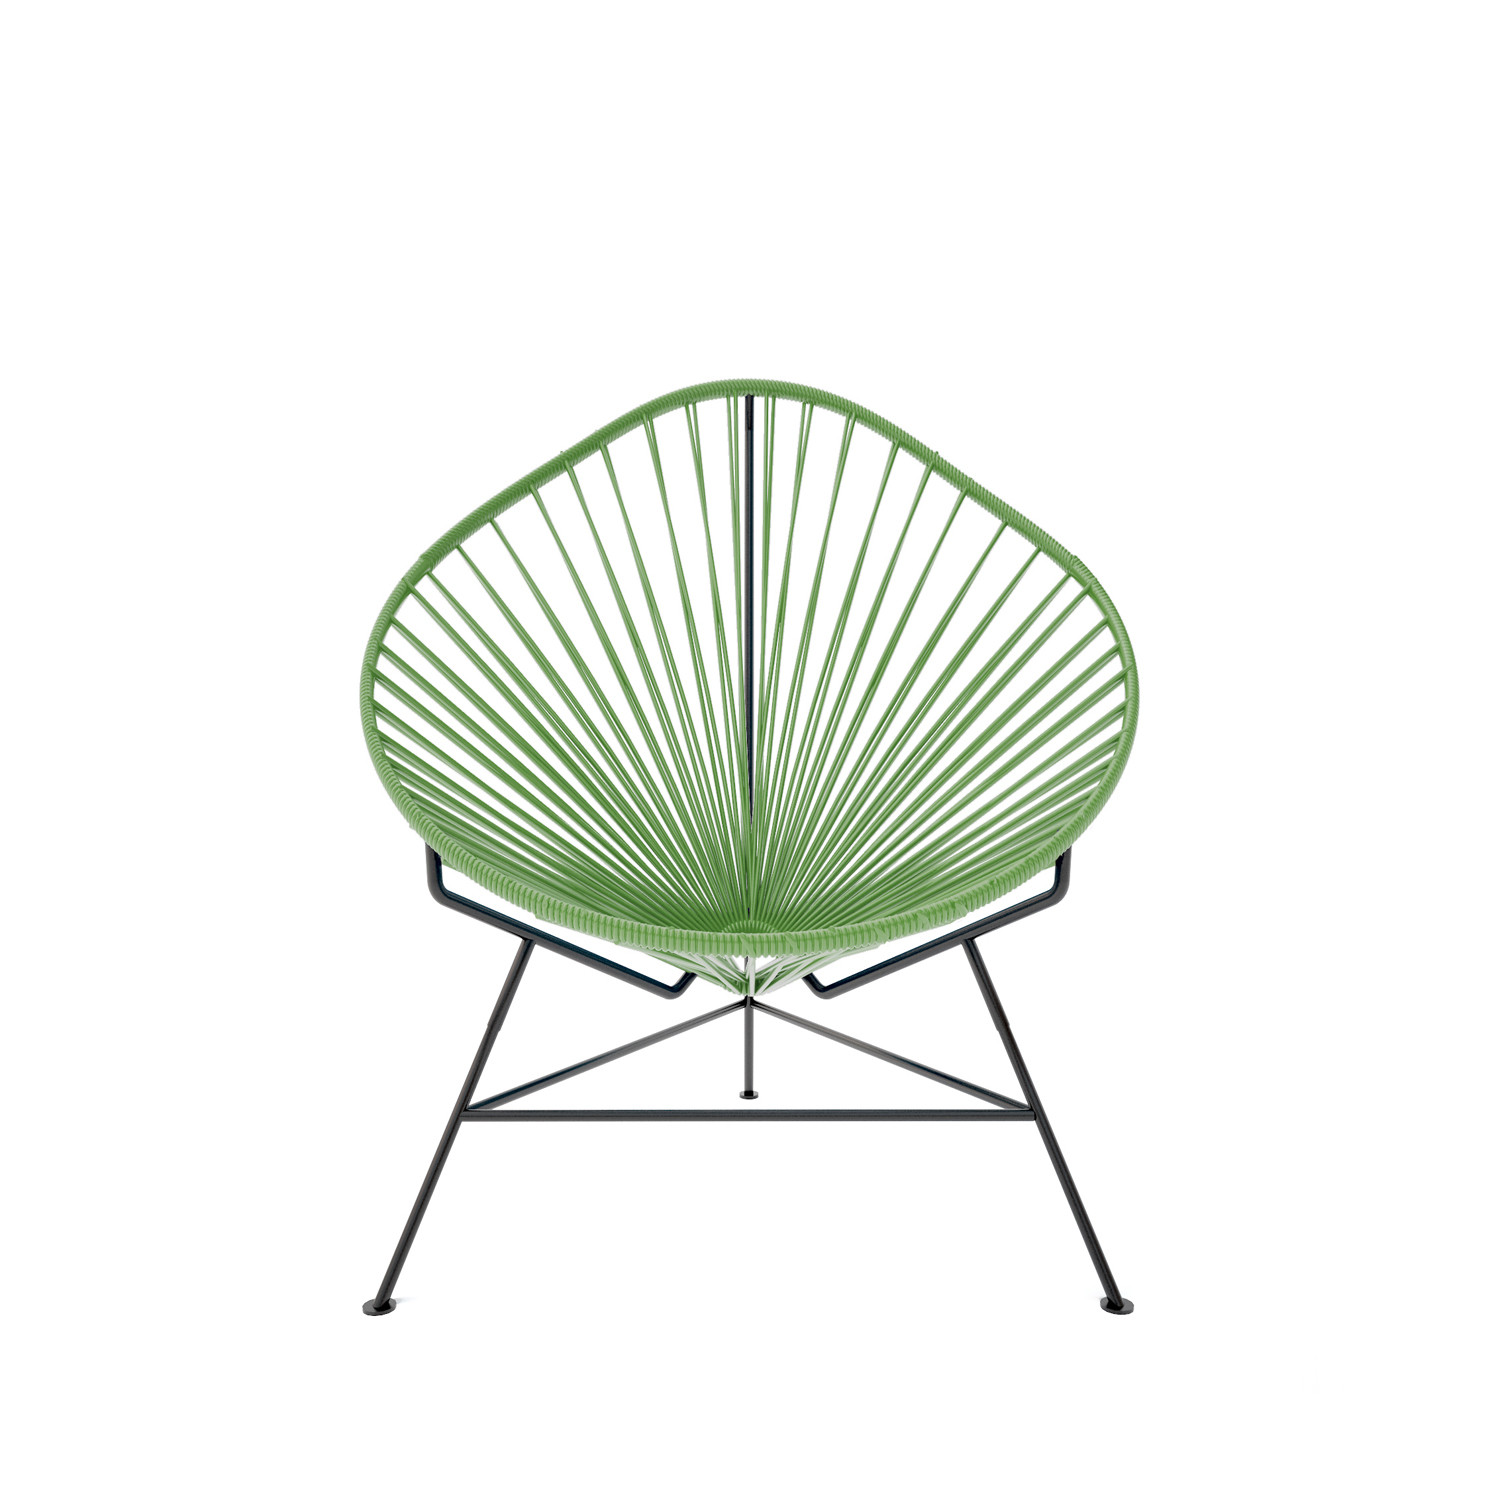 Genial Baby Acapulco Chair   Olive Weave On Black Frame